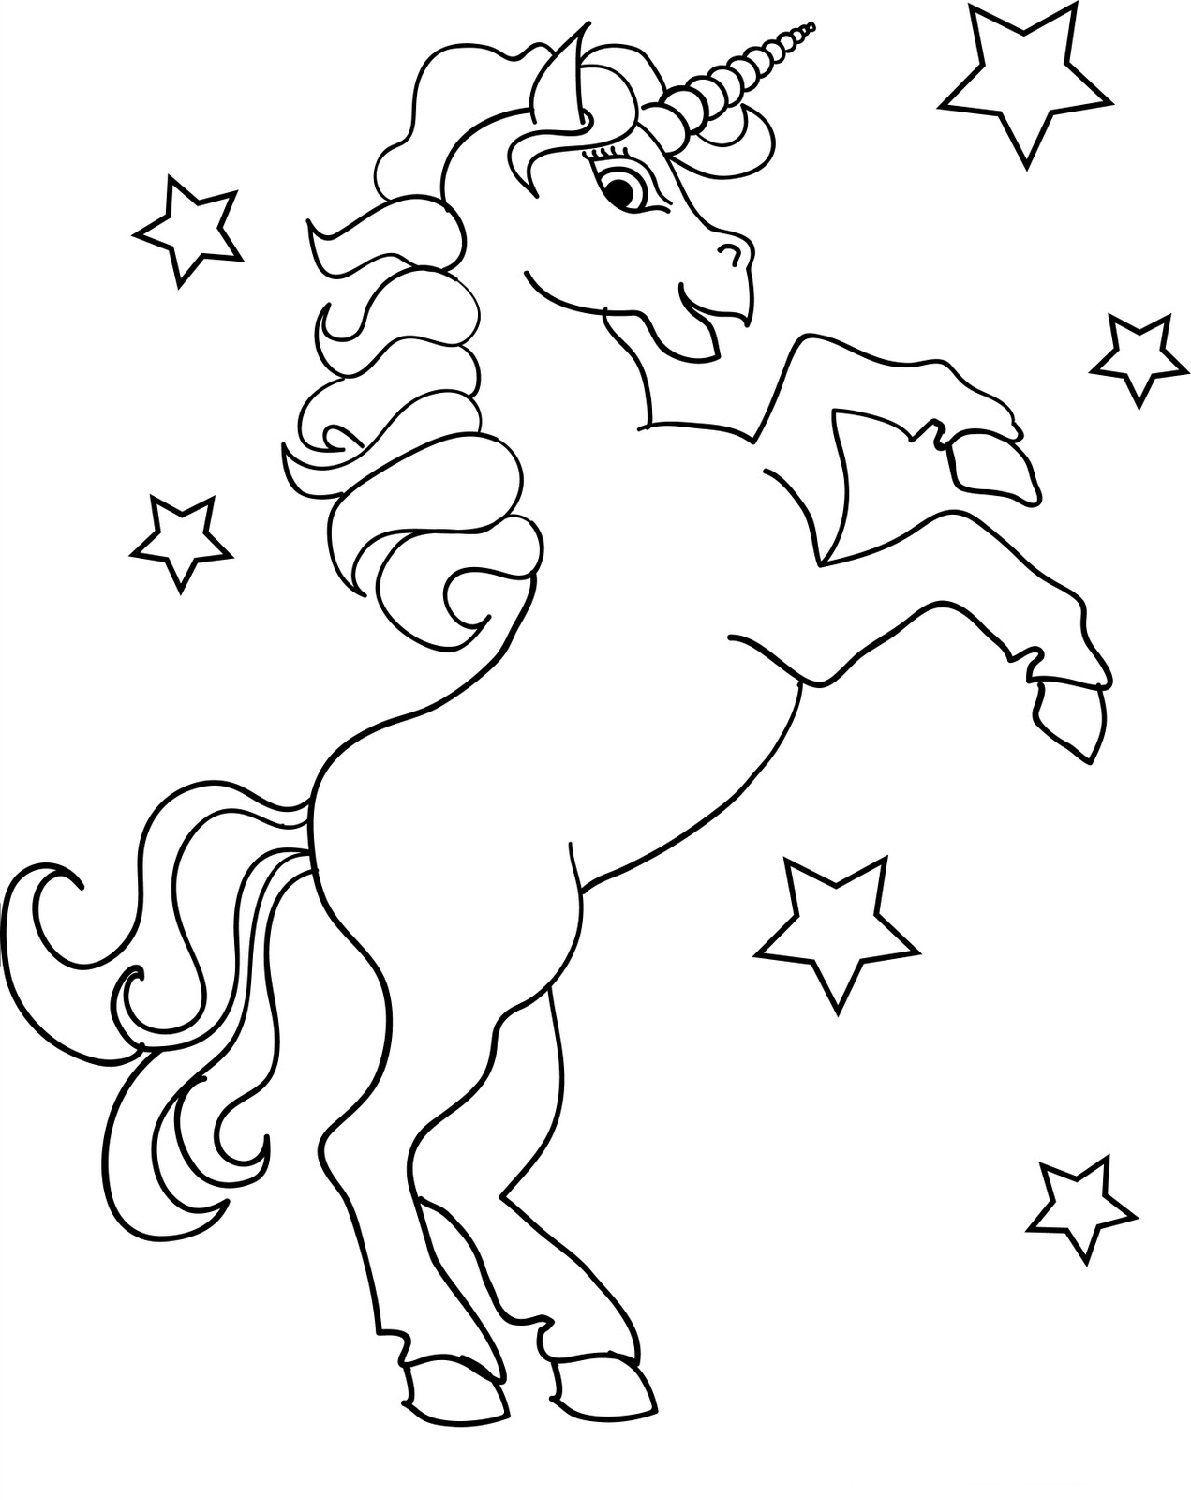 unicorn pictures coloring sheet baby unicorn coloring pages printable for kids pictures unicorn sheet coloring pictures